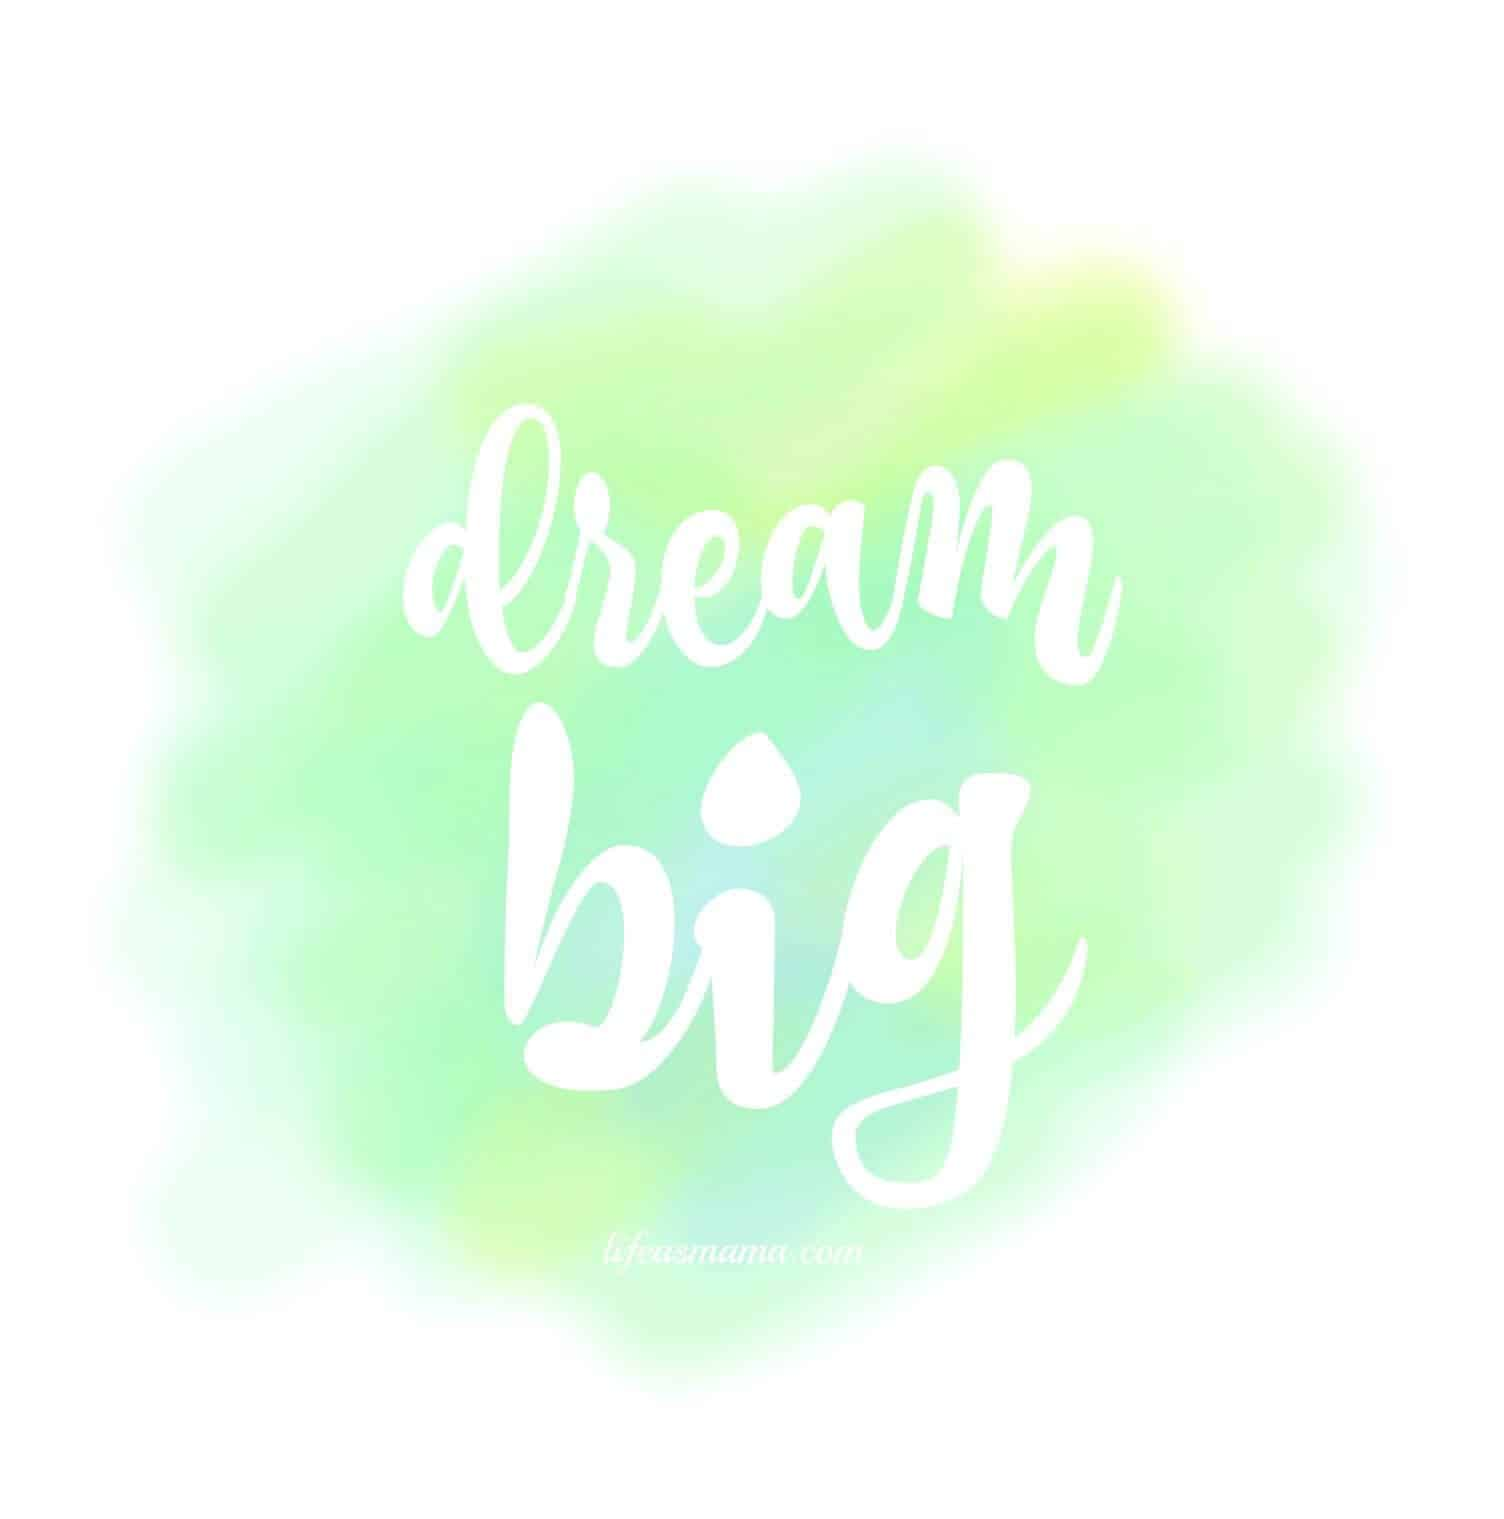 Download Cute Love Wallpapers With Quotes Dream Big Printable